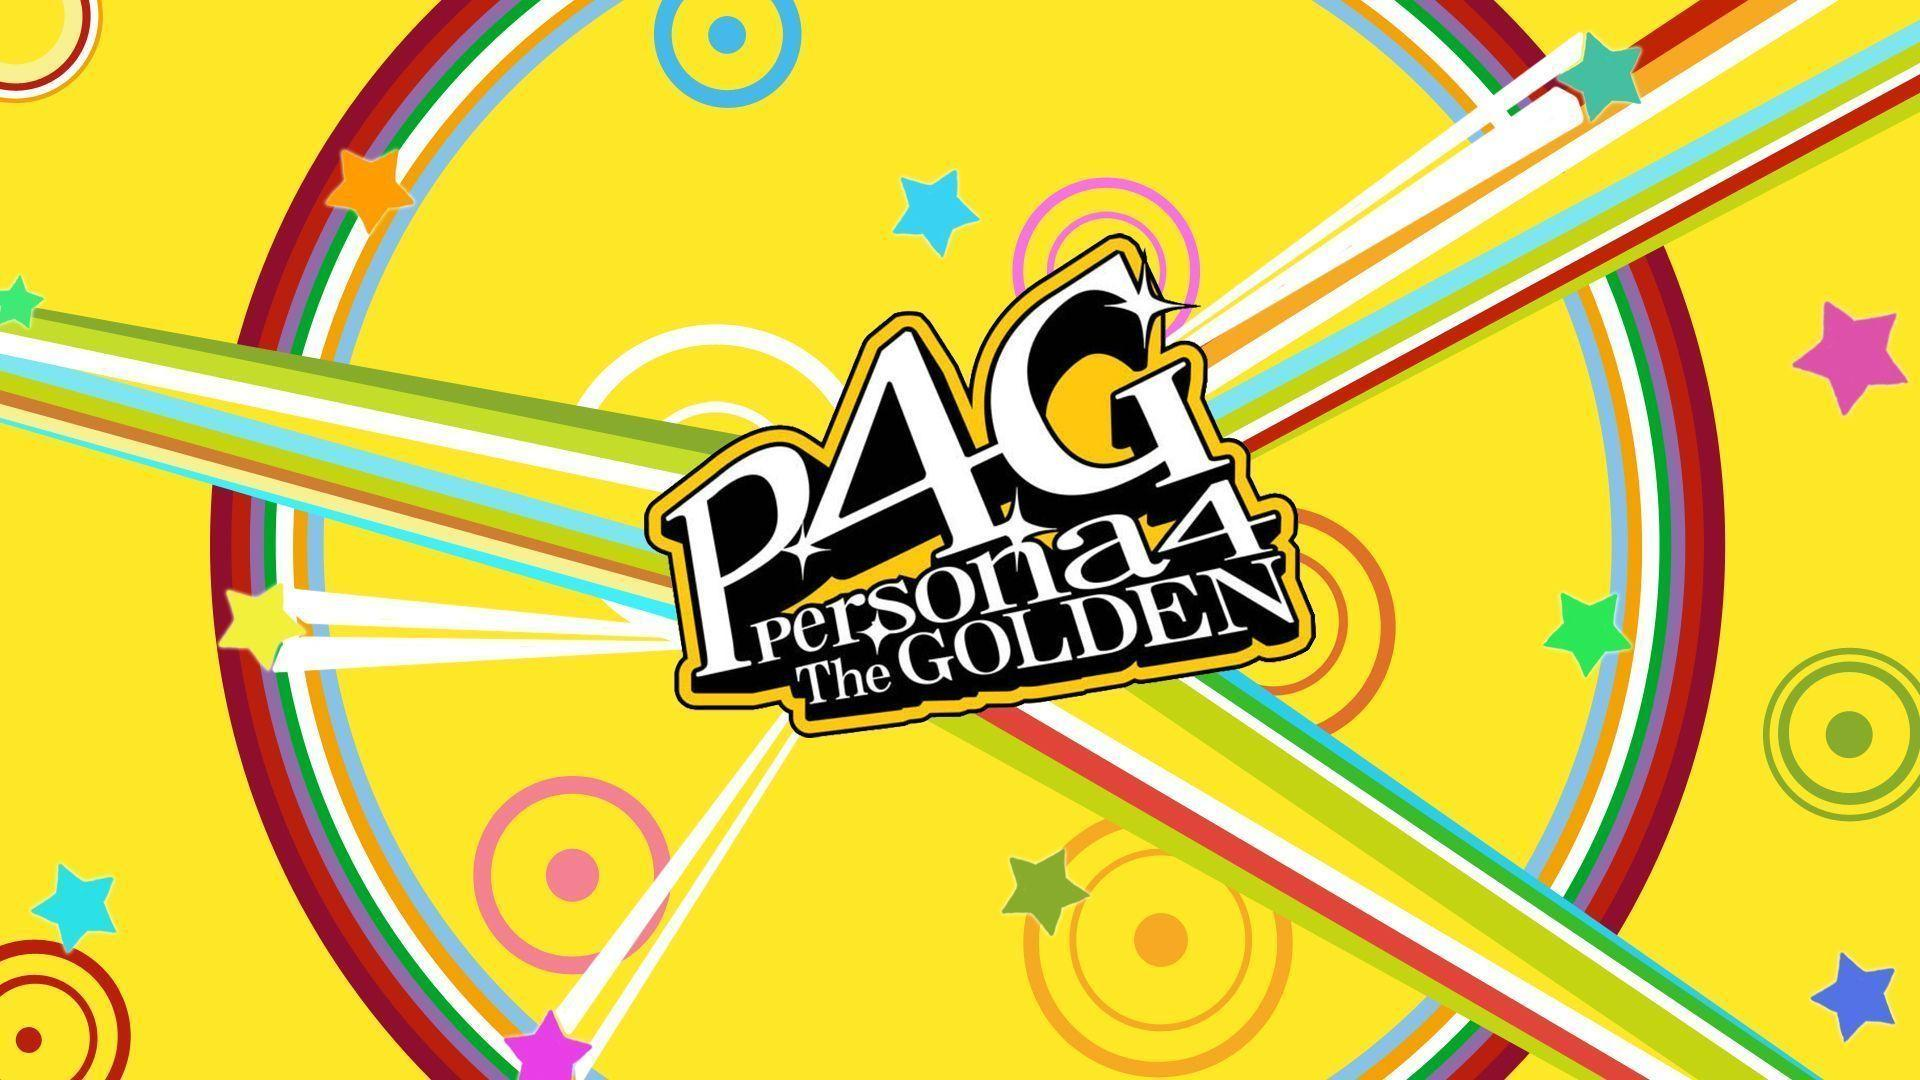 Download Persona 4 Golden Psp Free - sokolwalker